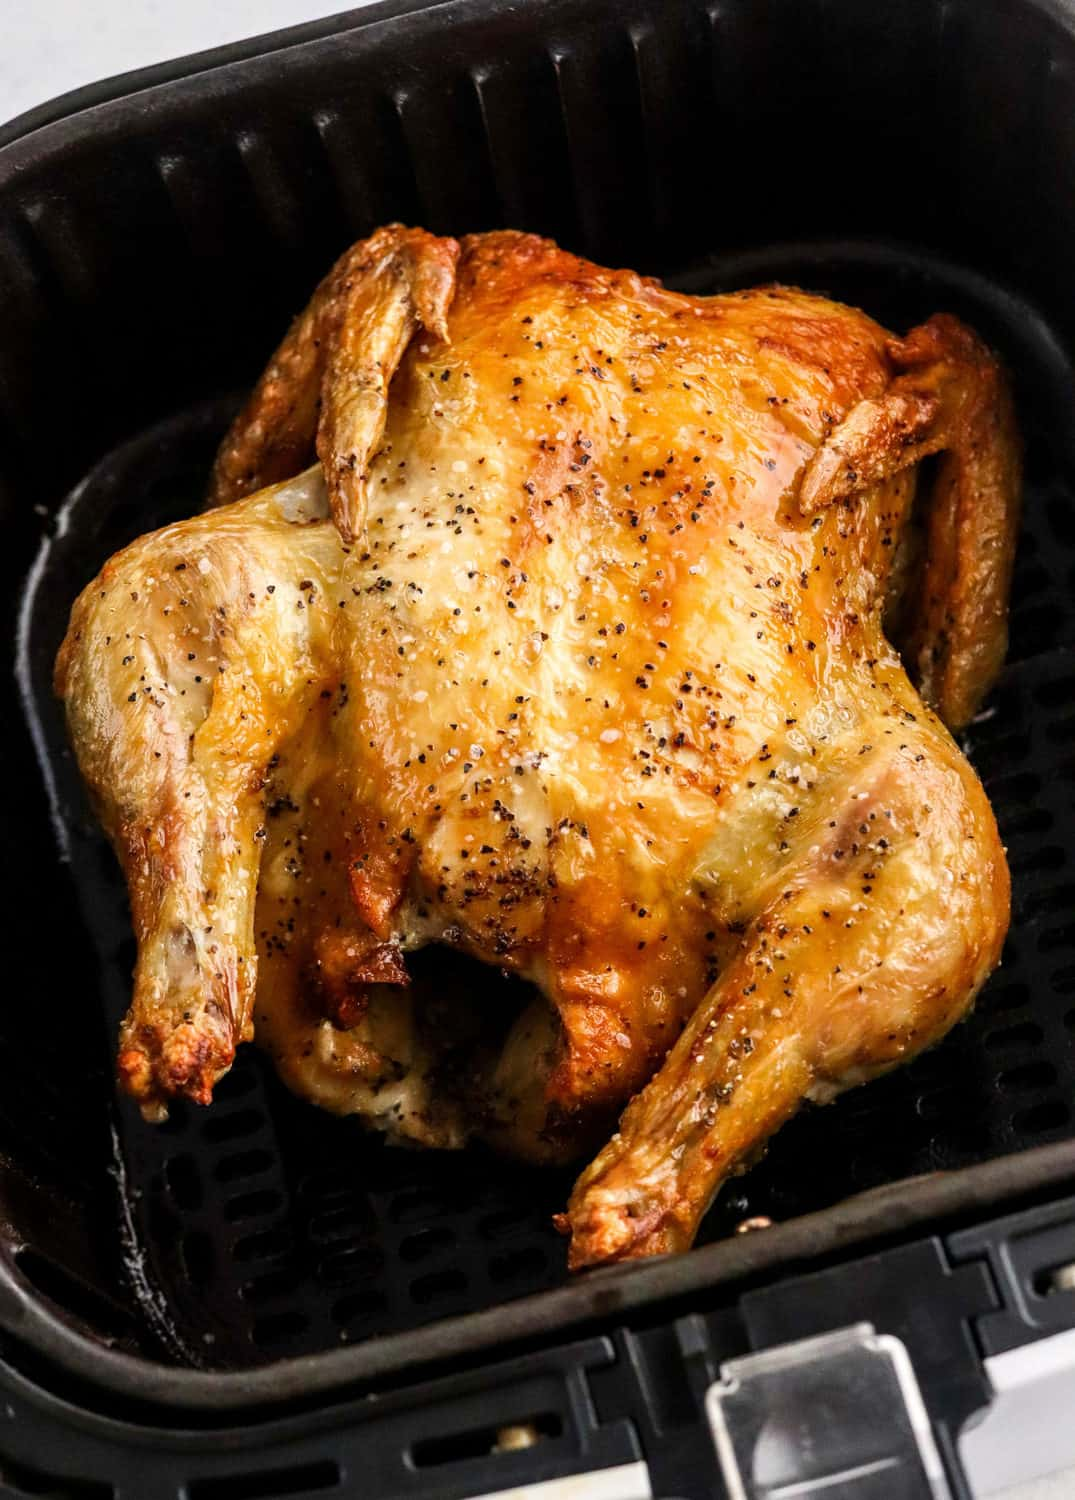 A whole chicken cooked with crispy skin in the air fryer.